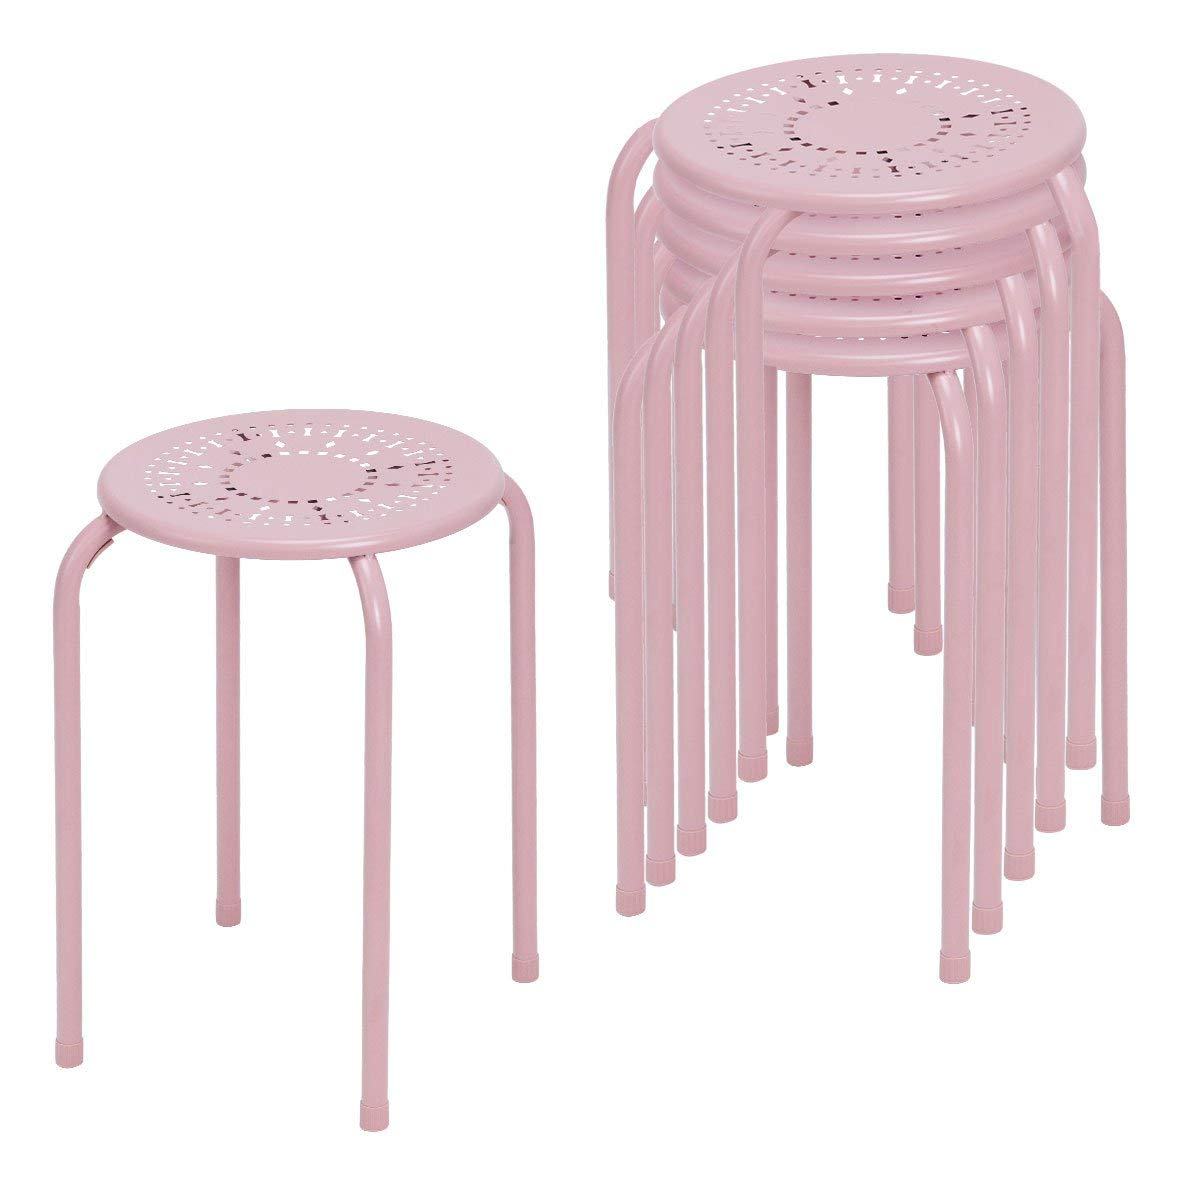 COSTWAY Metal Stool Daisy Design Stackable Backless Round Top stools for Kitchen Home, Garden & Living (6-Pack) (Pink)